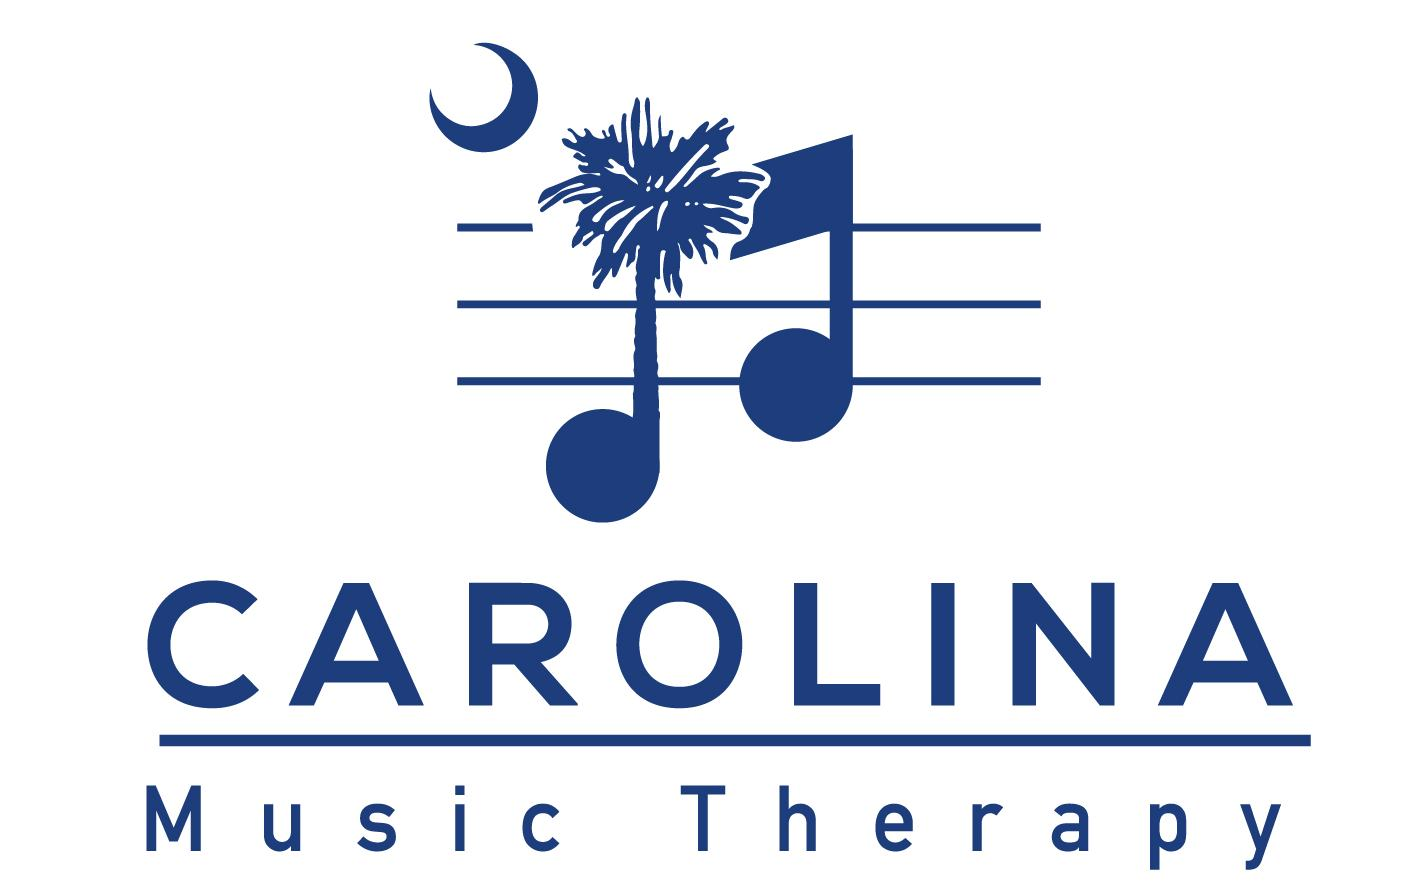 Carolina Music Therapy image